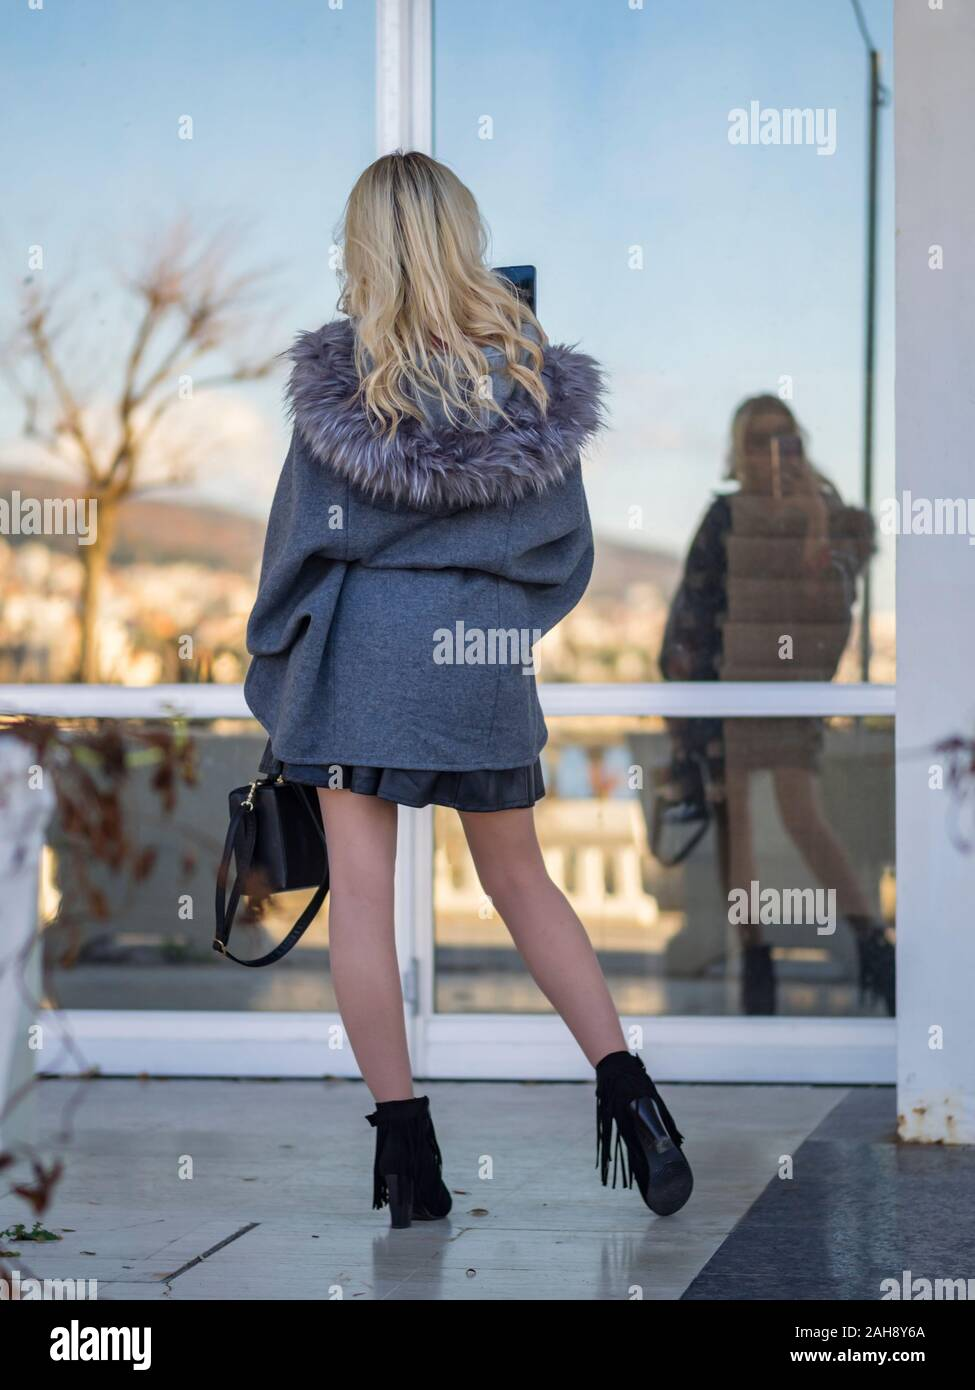 Fanciful blonde young lady is taking selfie for facebook in window glass reflection view from rear back behind with finesse Stock Photo